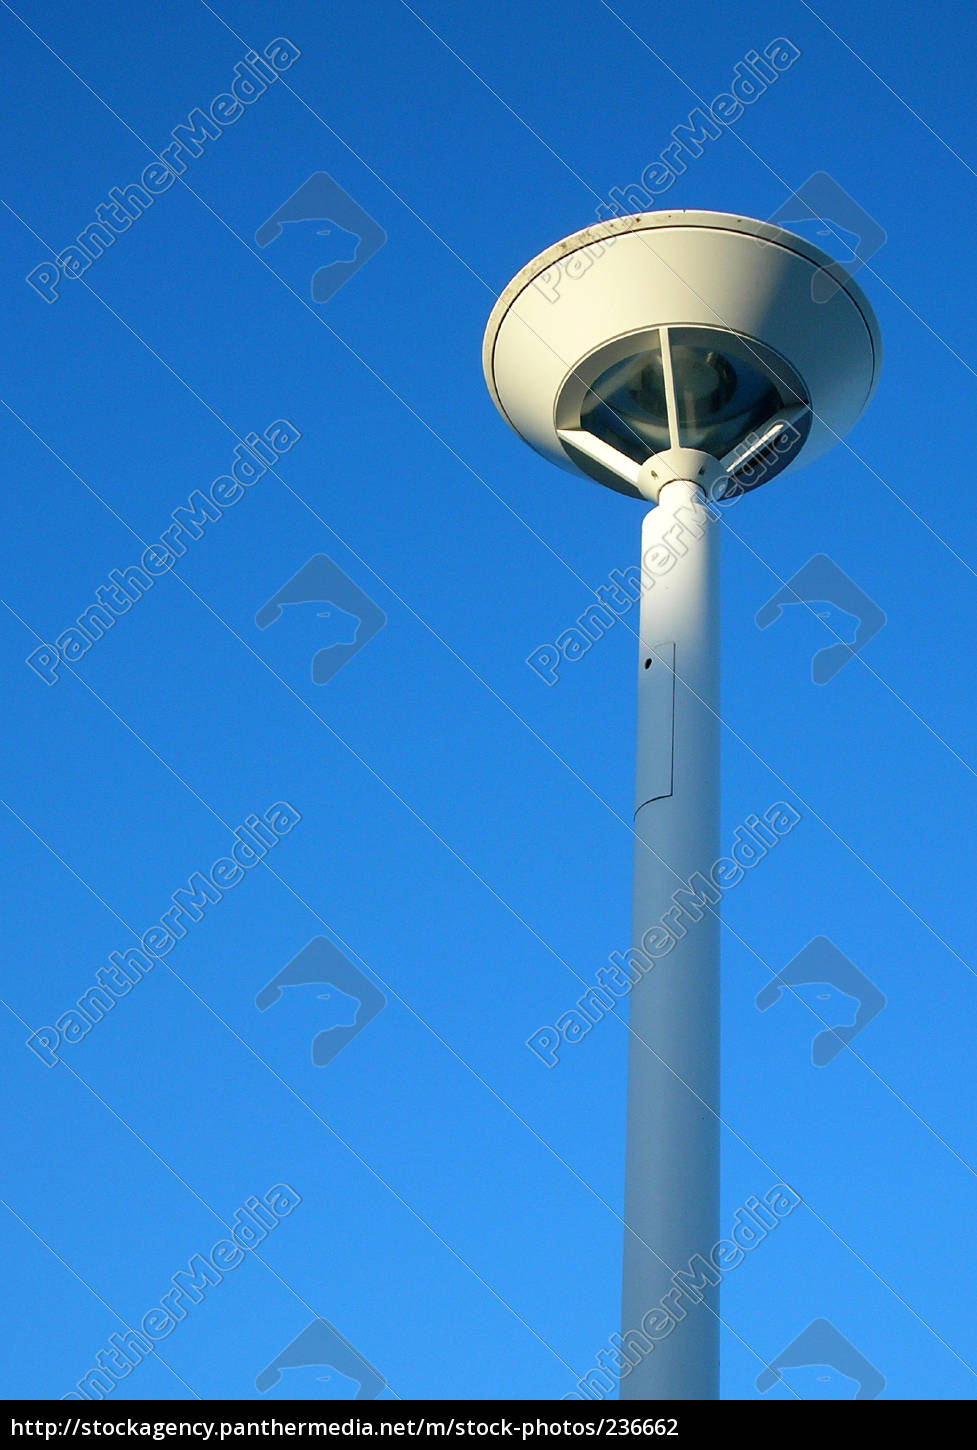 Stock Image 236662 Modern Street Lighting